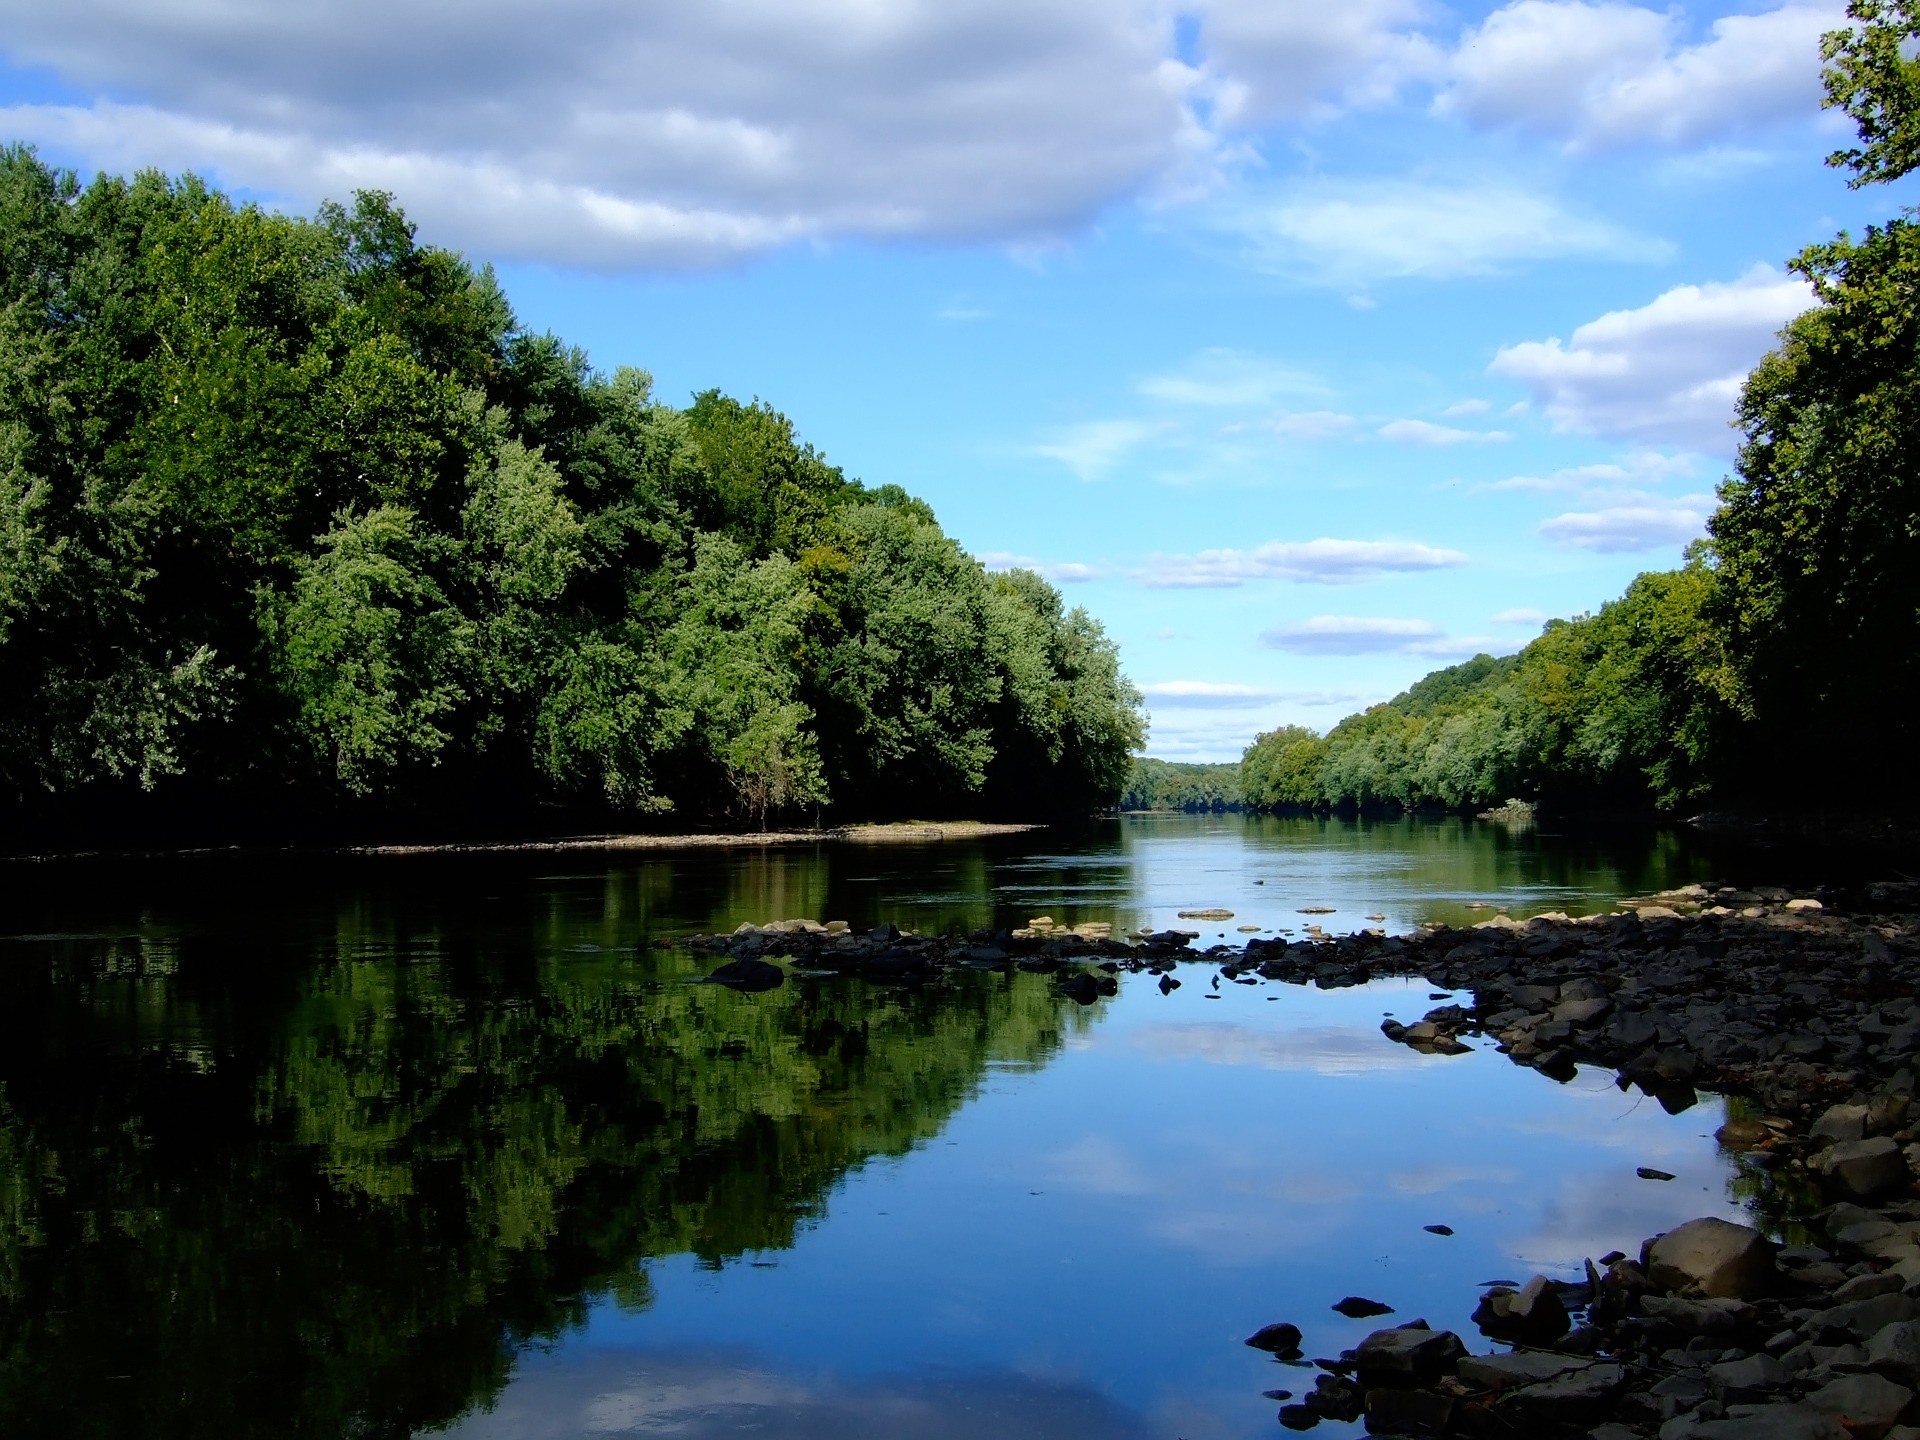 Rivers Nature Forest River Blue Island Wild Green Summer